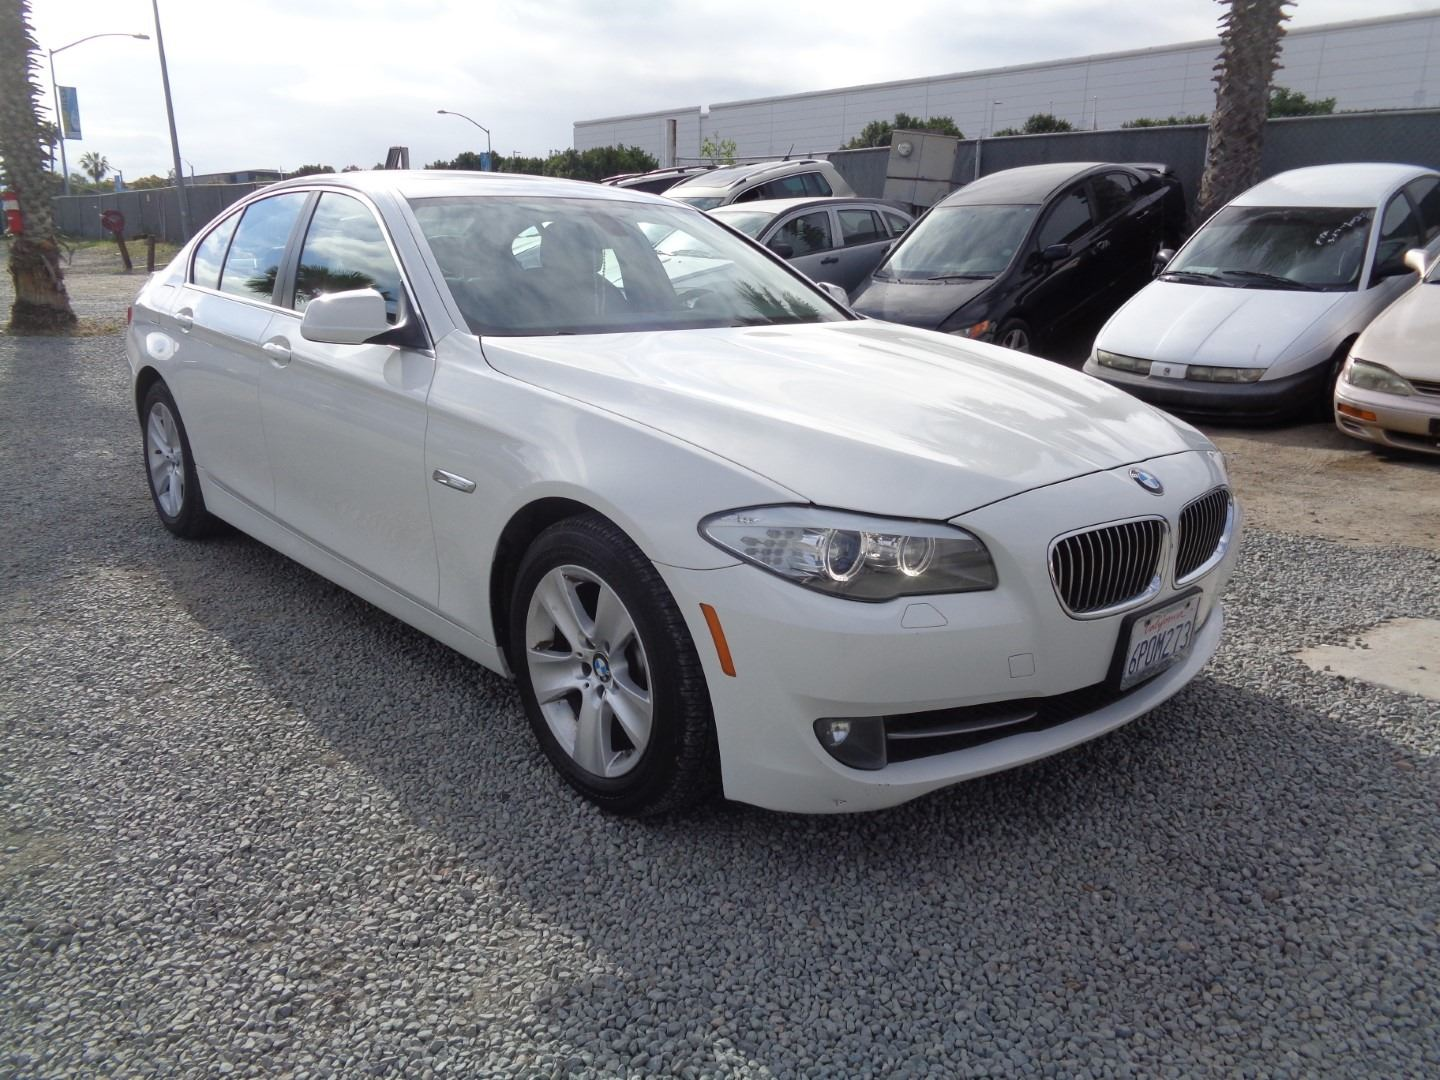 hight resolution of image 1 bmw 528i 2011 t